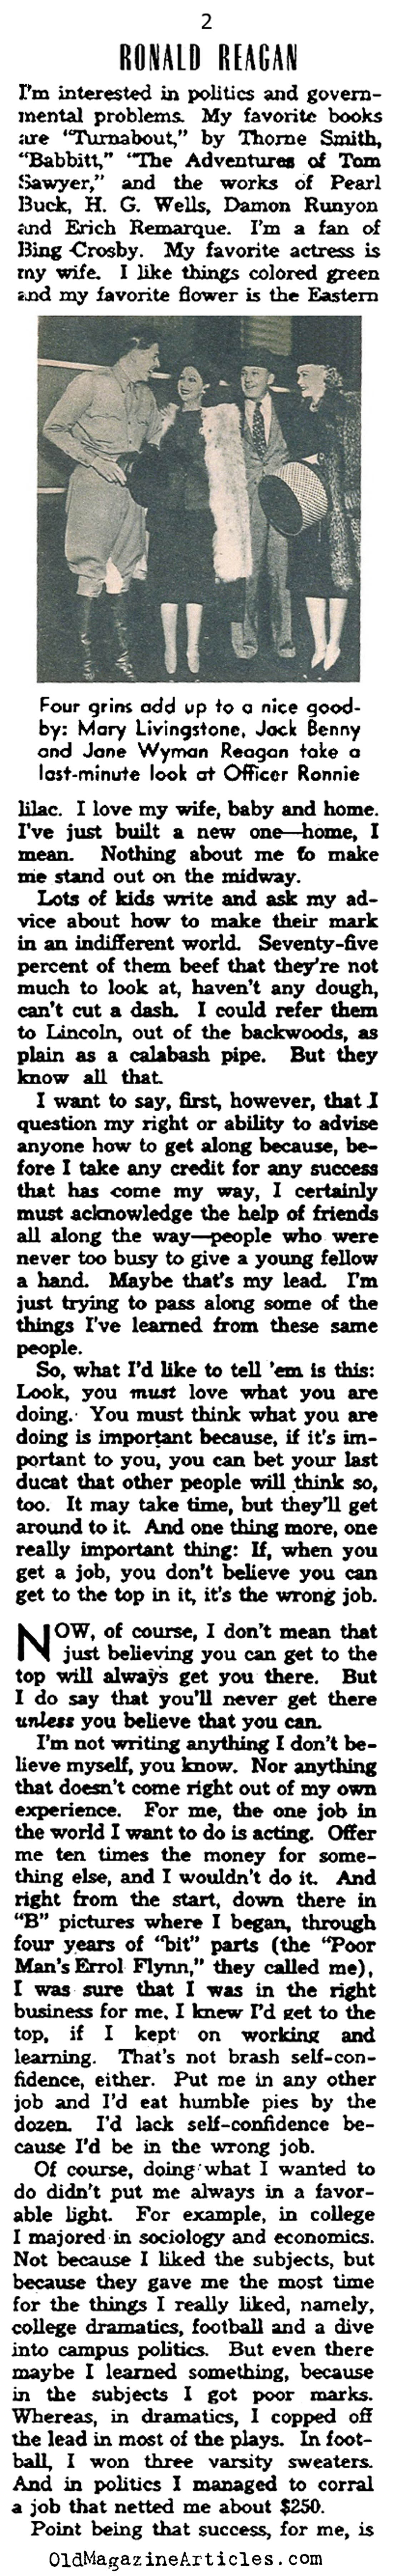 Ronald Reagan in his Own Words (Photoplay Magazine, 1942)